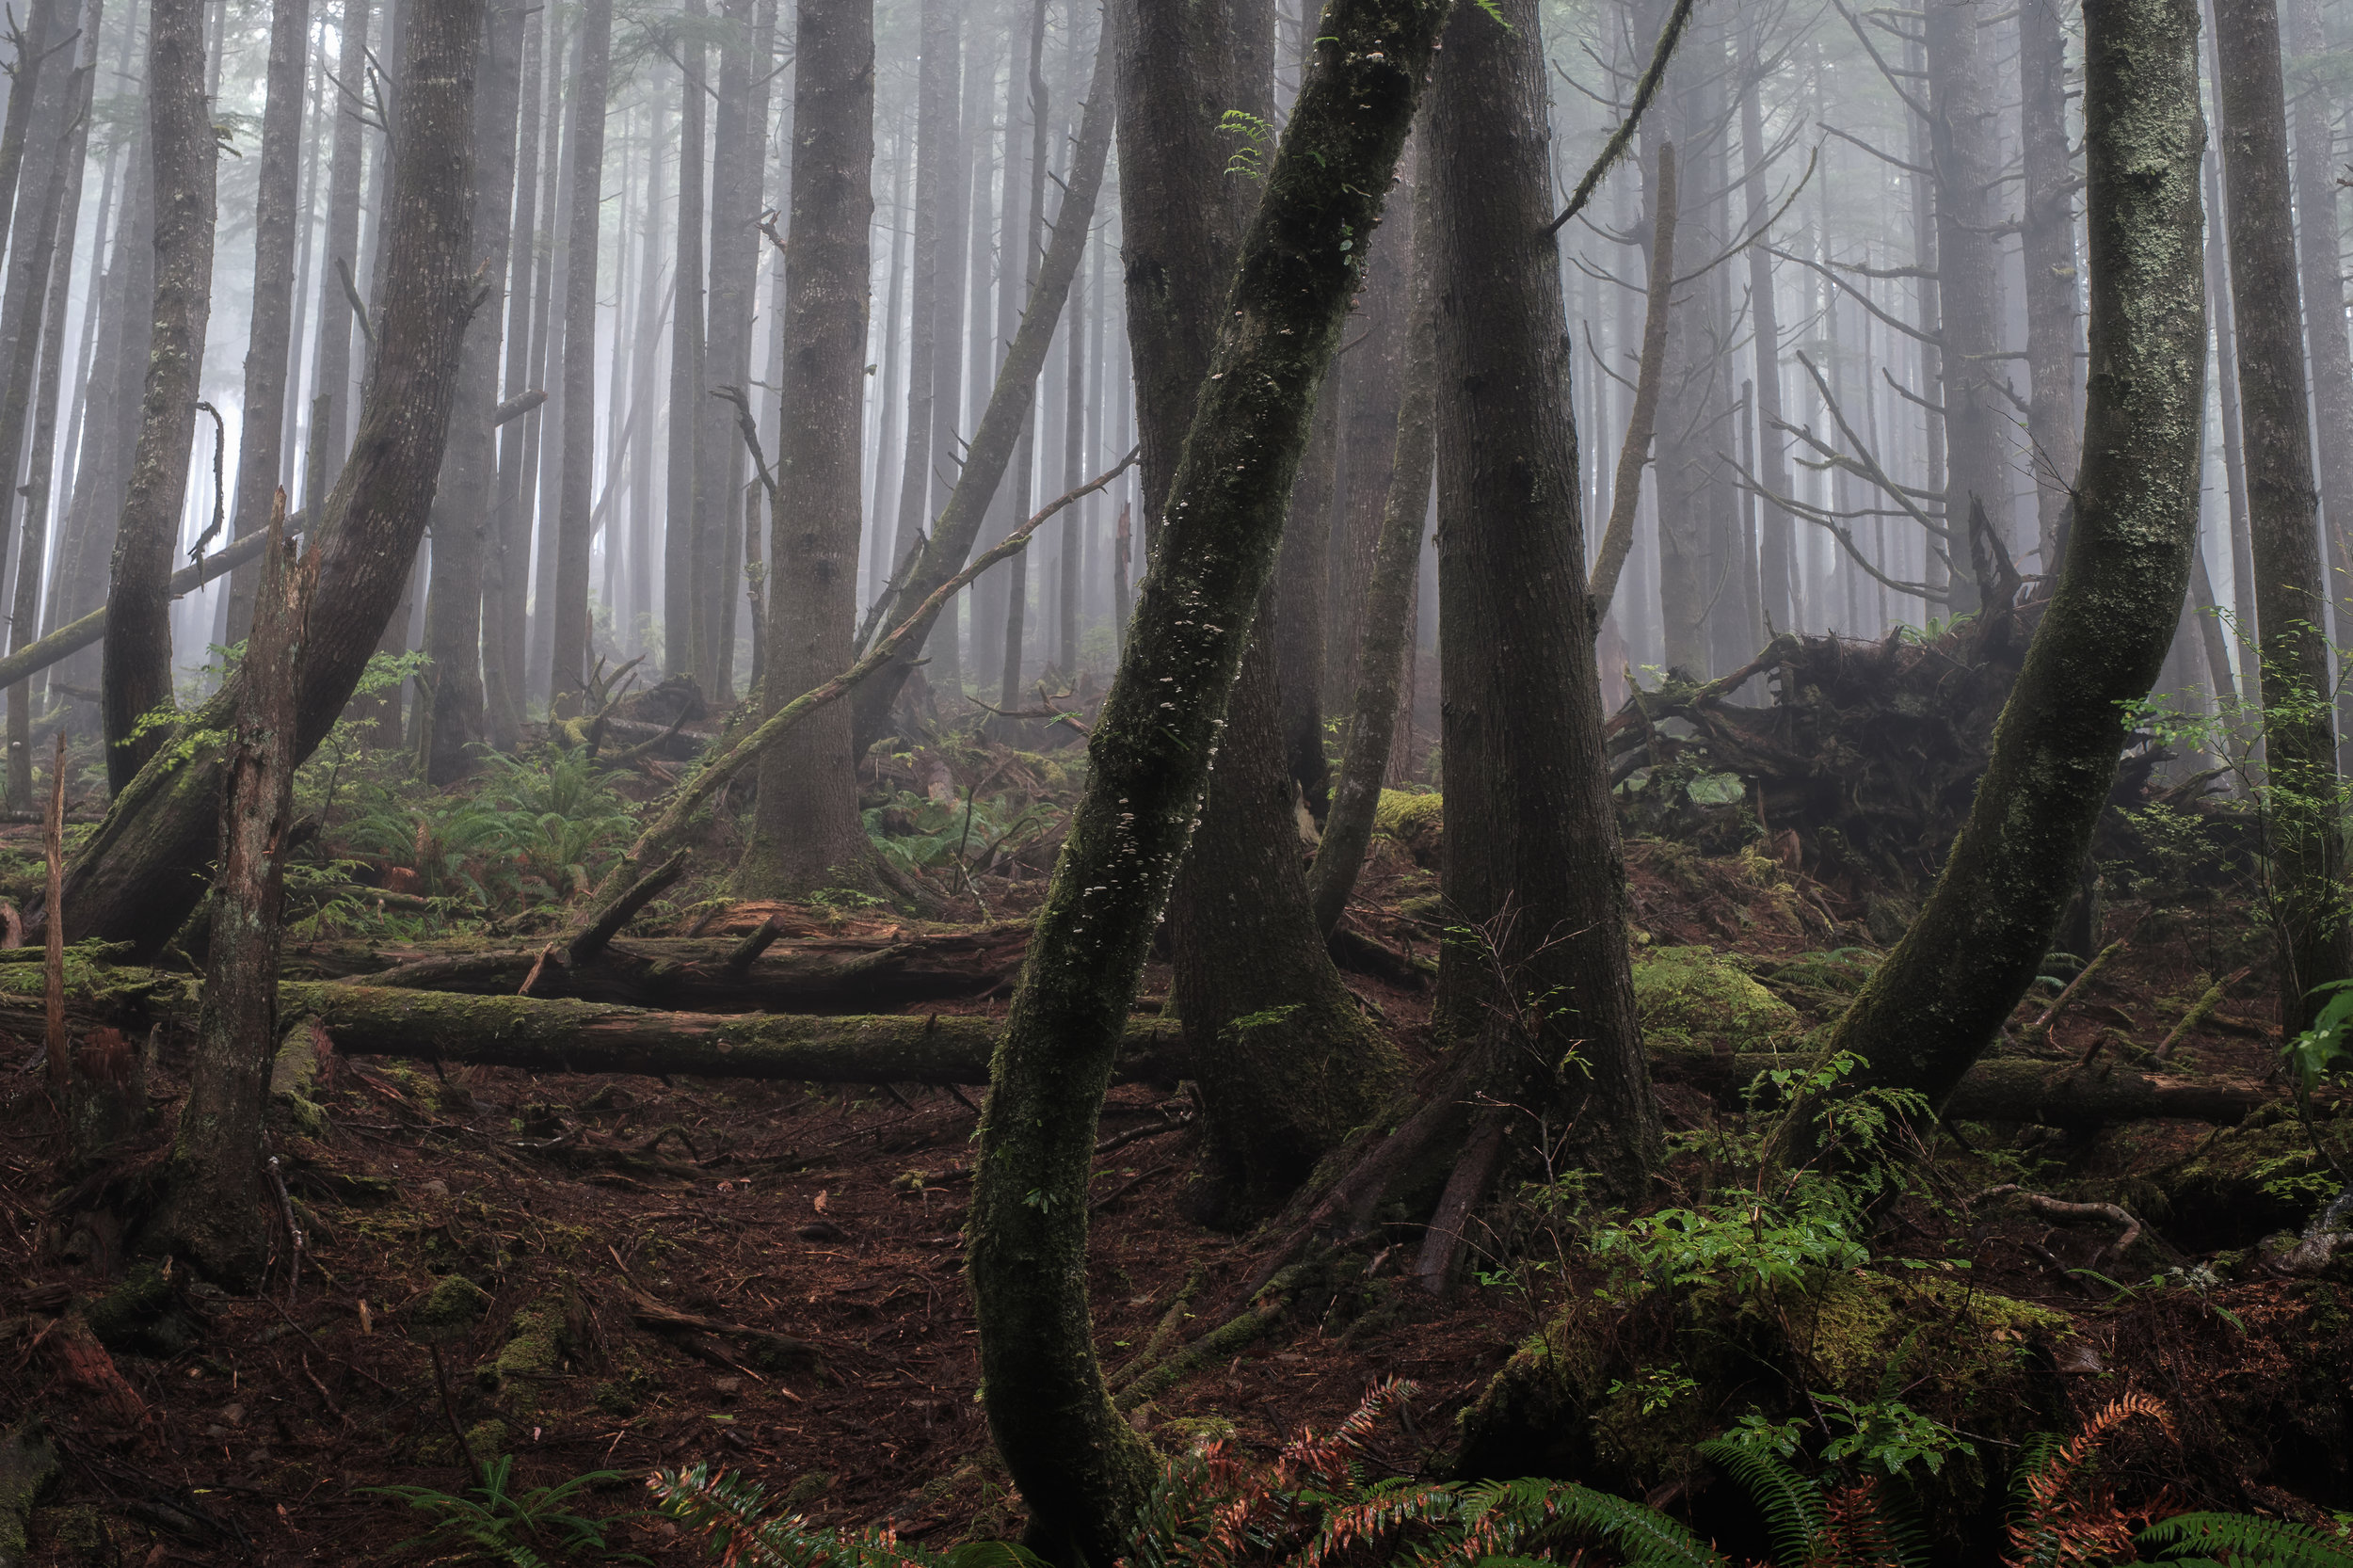 A real foggy forest image not done with the use of a fog machine!